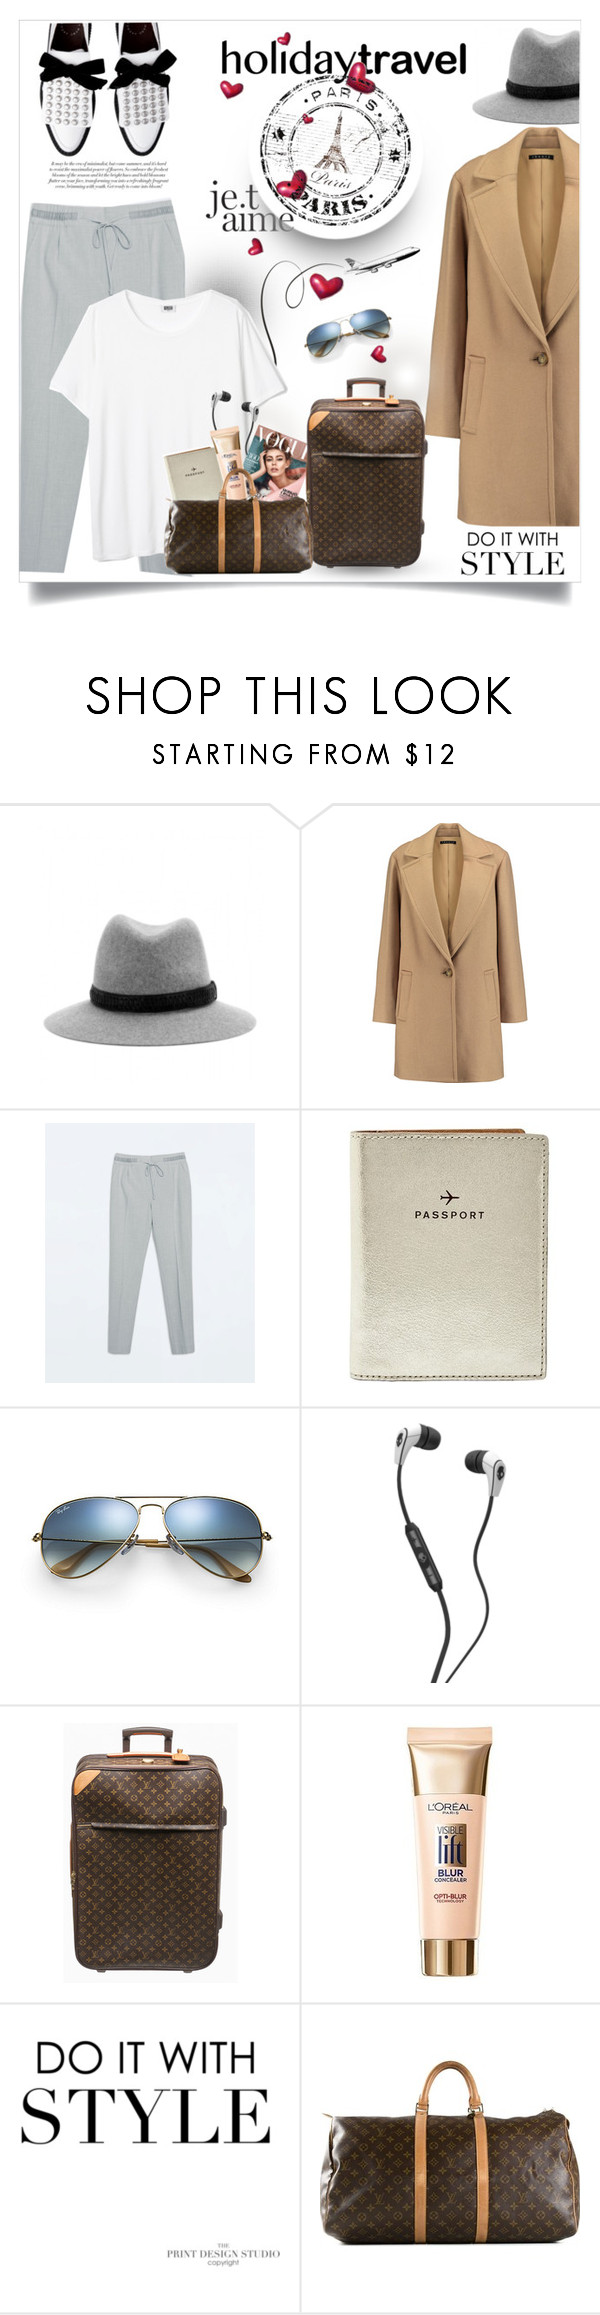 """""""Holiday Travel"""" by monica-dick ❤ liked on Polyvore featuring rag & bone, Theory, Zara, FOSSIL, Skullcandy, Louis Vuitton, L'Oréal Paris and travelinstyle"""